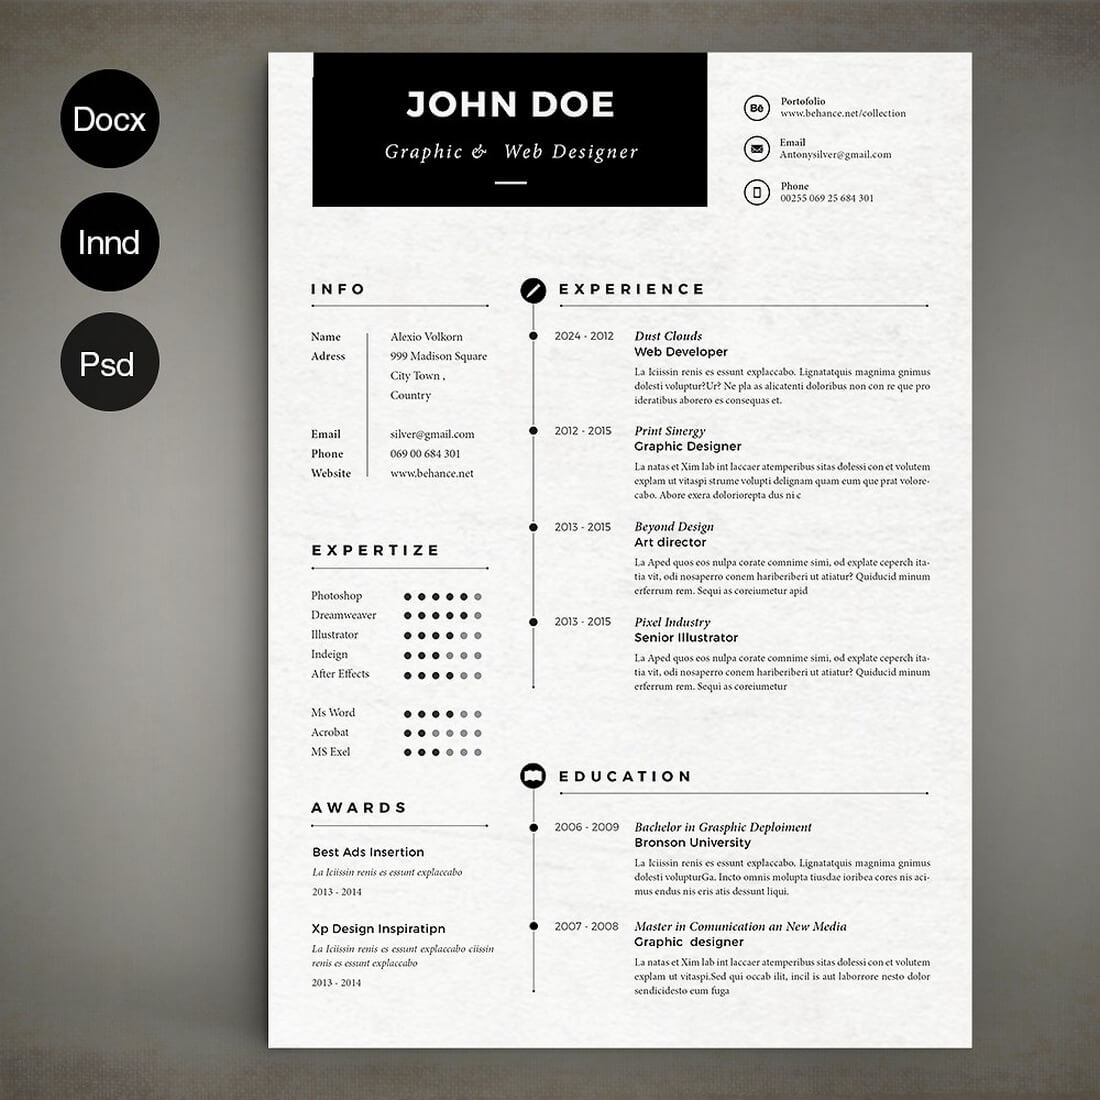 floral designer resume sample the design kit bloom illustrations floral designer resume sample the best resume templates examples web emailing basic resume template that suitable